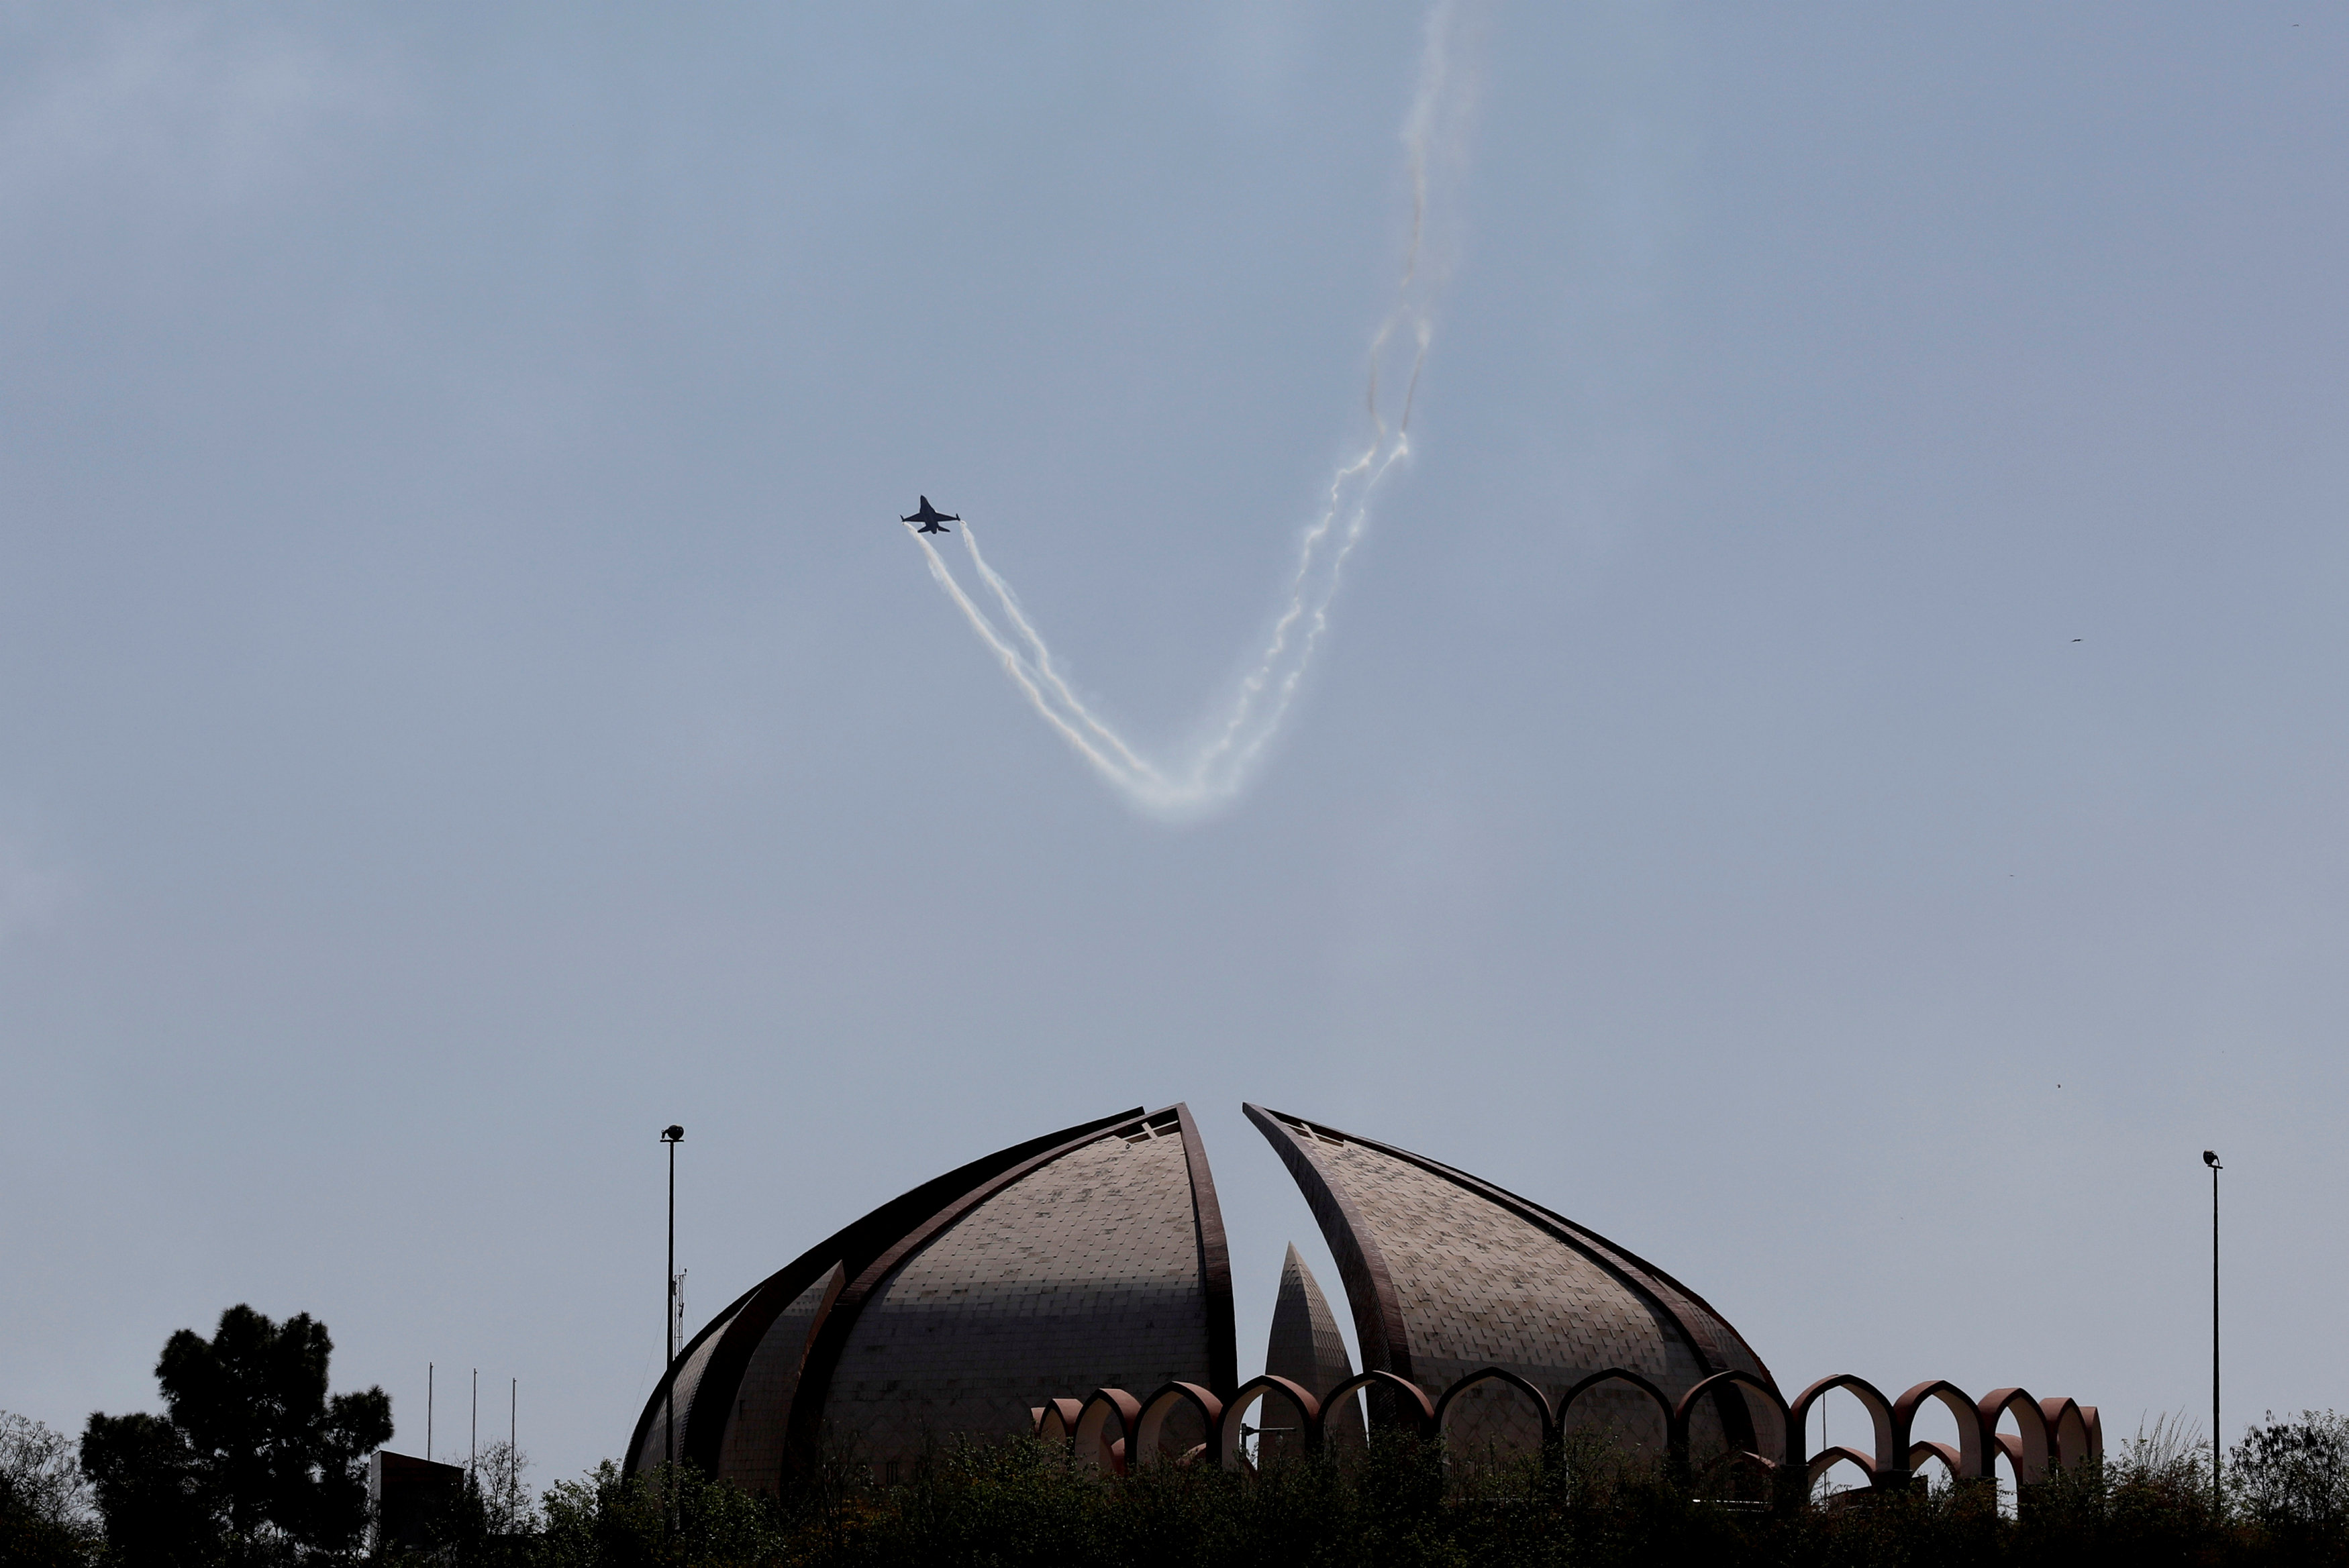 Pakistan Air Force (PAF)'s fighter jet F-16 flies over the Pakistan National Monument in Islamabad, Pakistan